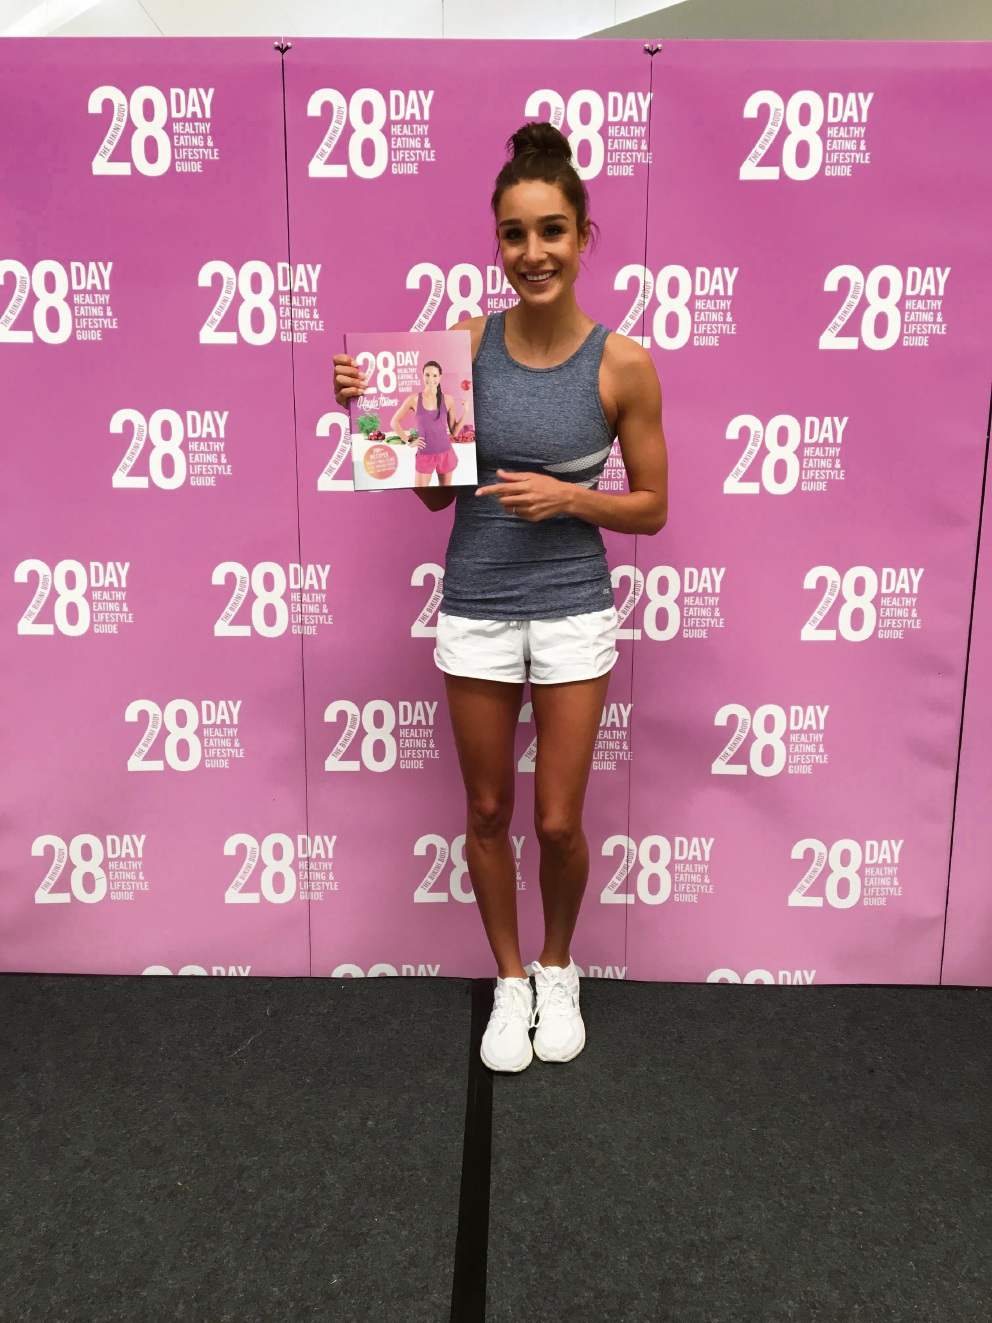 Fitness guru Kayla Itsines' releases new book at Whitford City